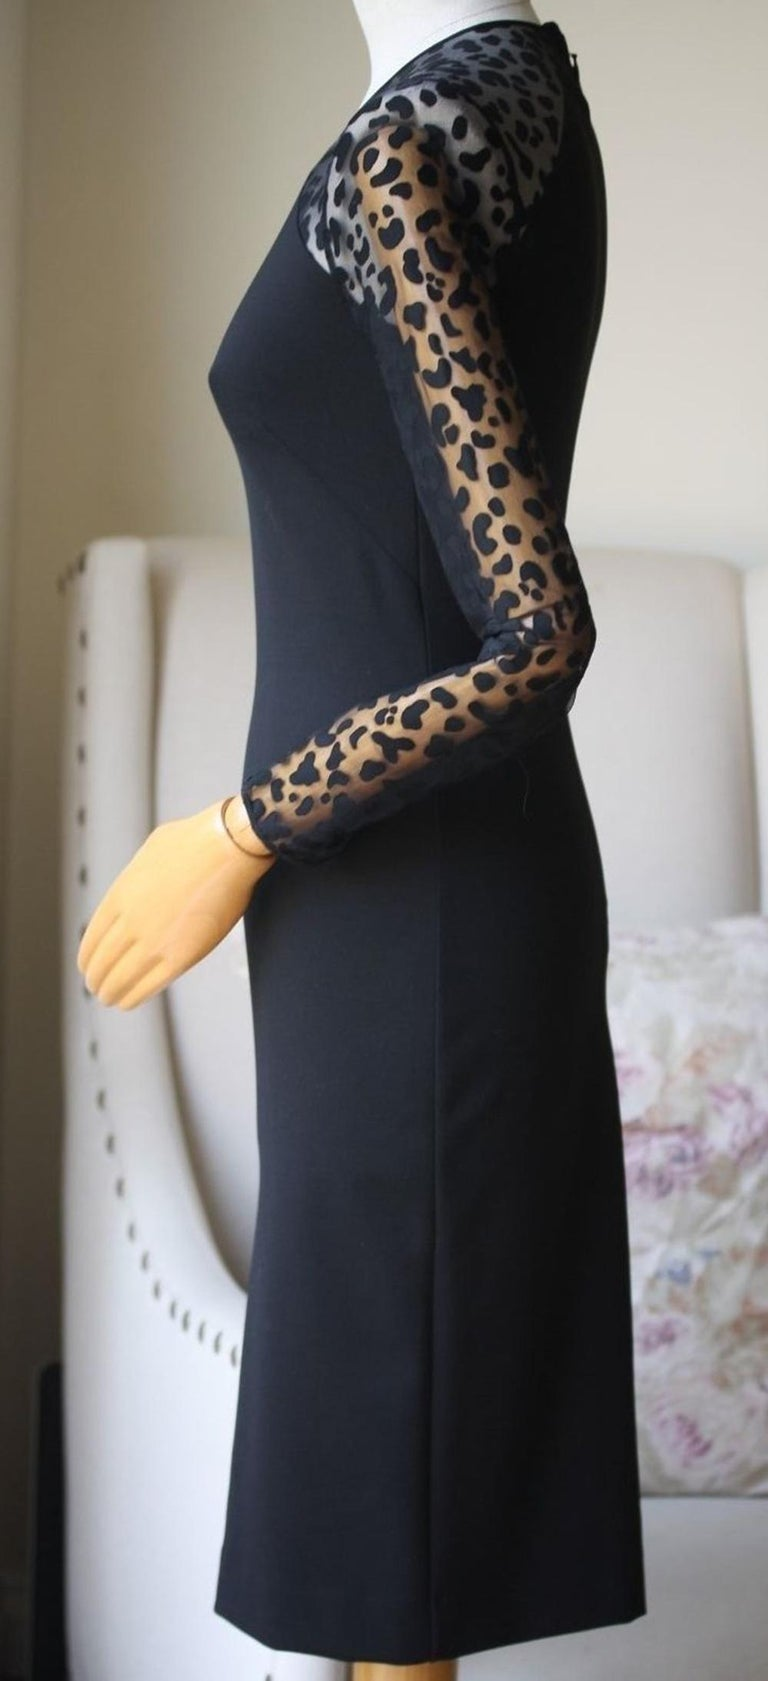 Stella McCartney  Devoré-Paneled Stretch-Jersey Dress In Excellent Condition For Sale In London, GB